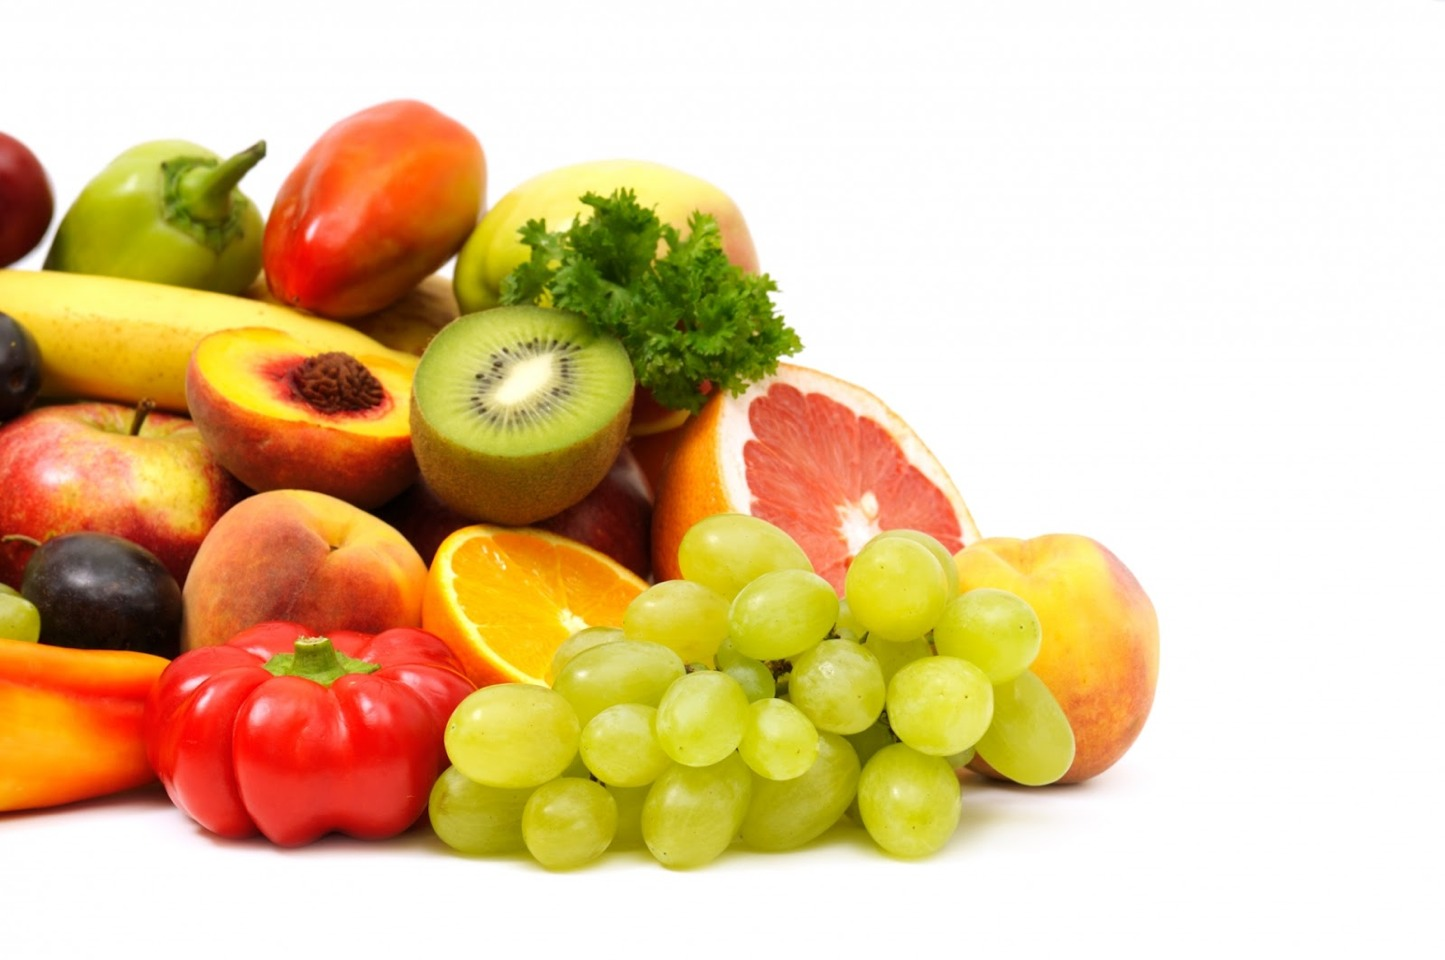 Get enough C  Eating foods high in vitamin C like citrus fruits, berries, peppers and melon helps create a mildly acidic environment which is inhospitable to the bacteria that cause bad breath. Vitamin C can also help prevent gum disease and plaque buildup which can also contribute to halitosis.